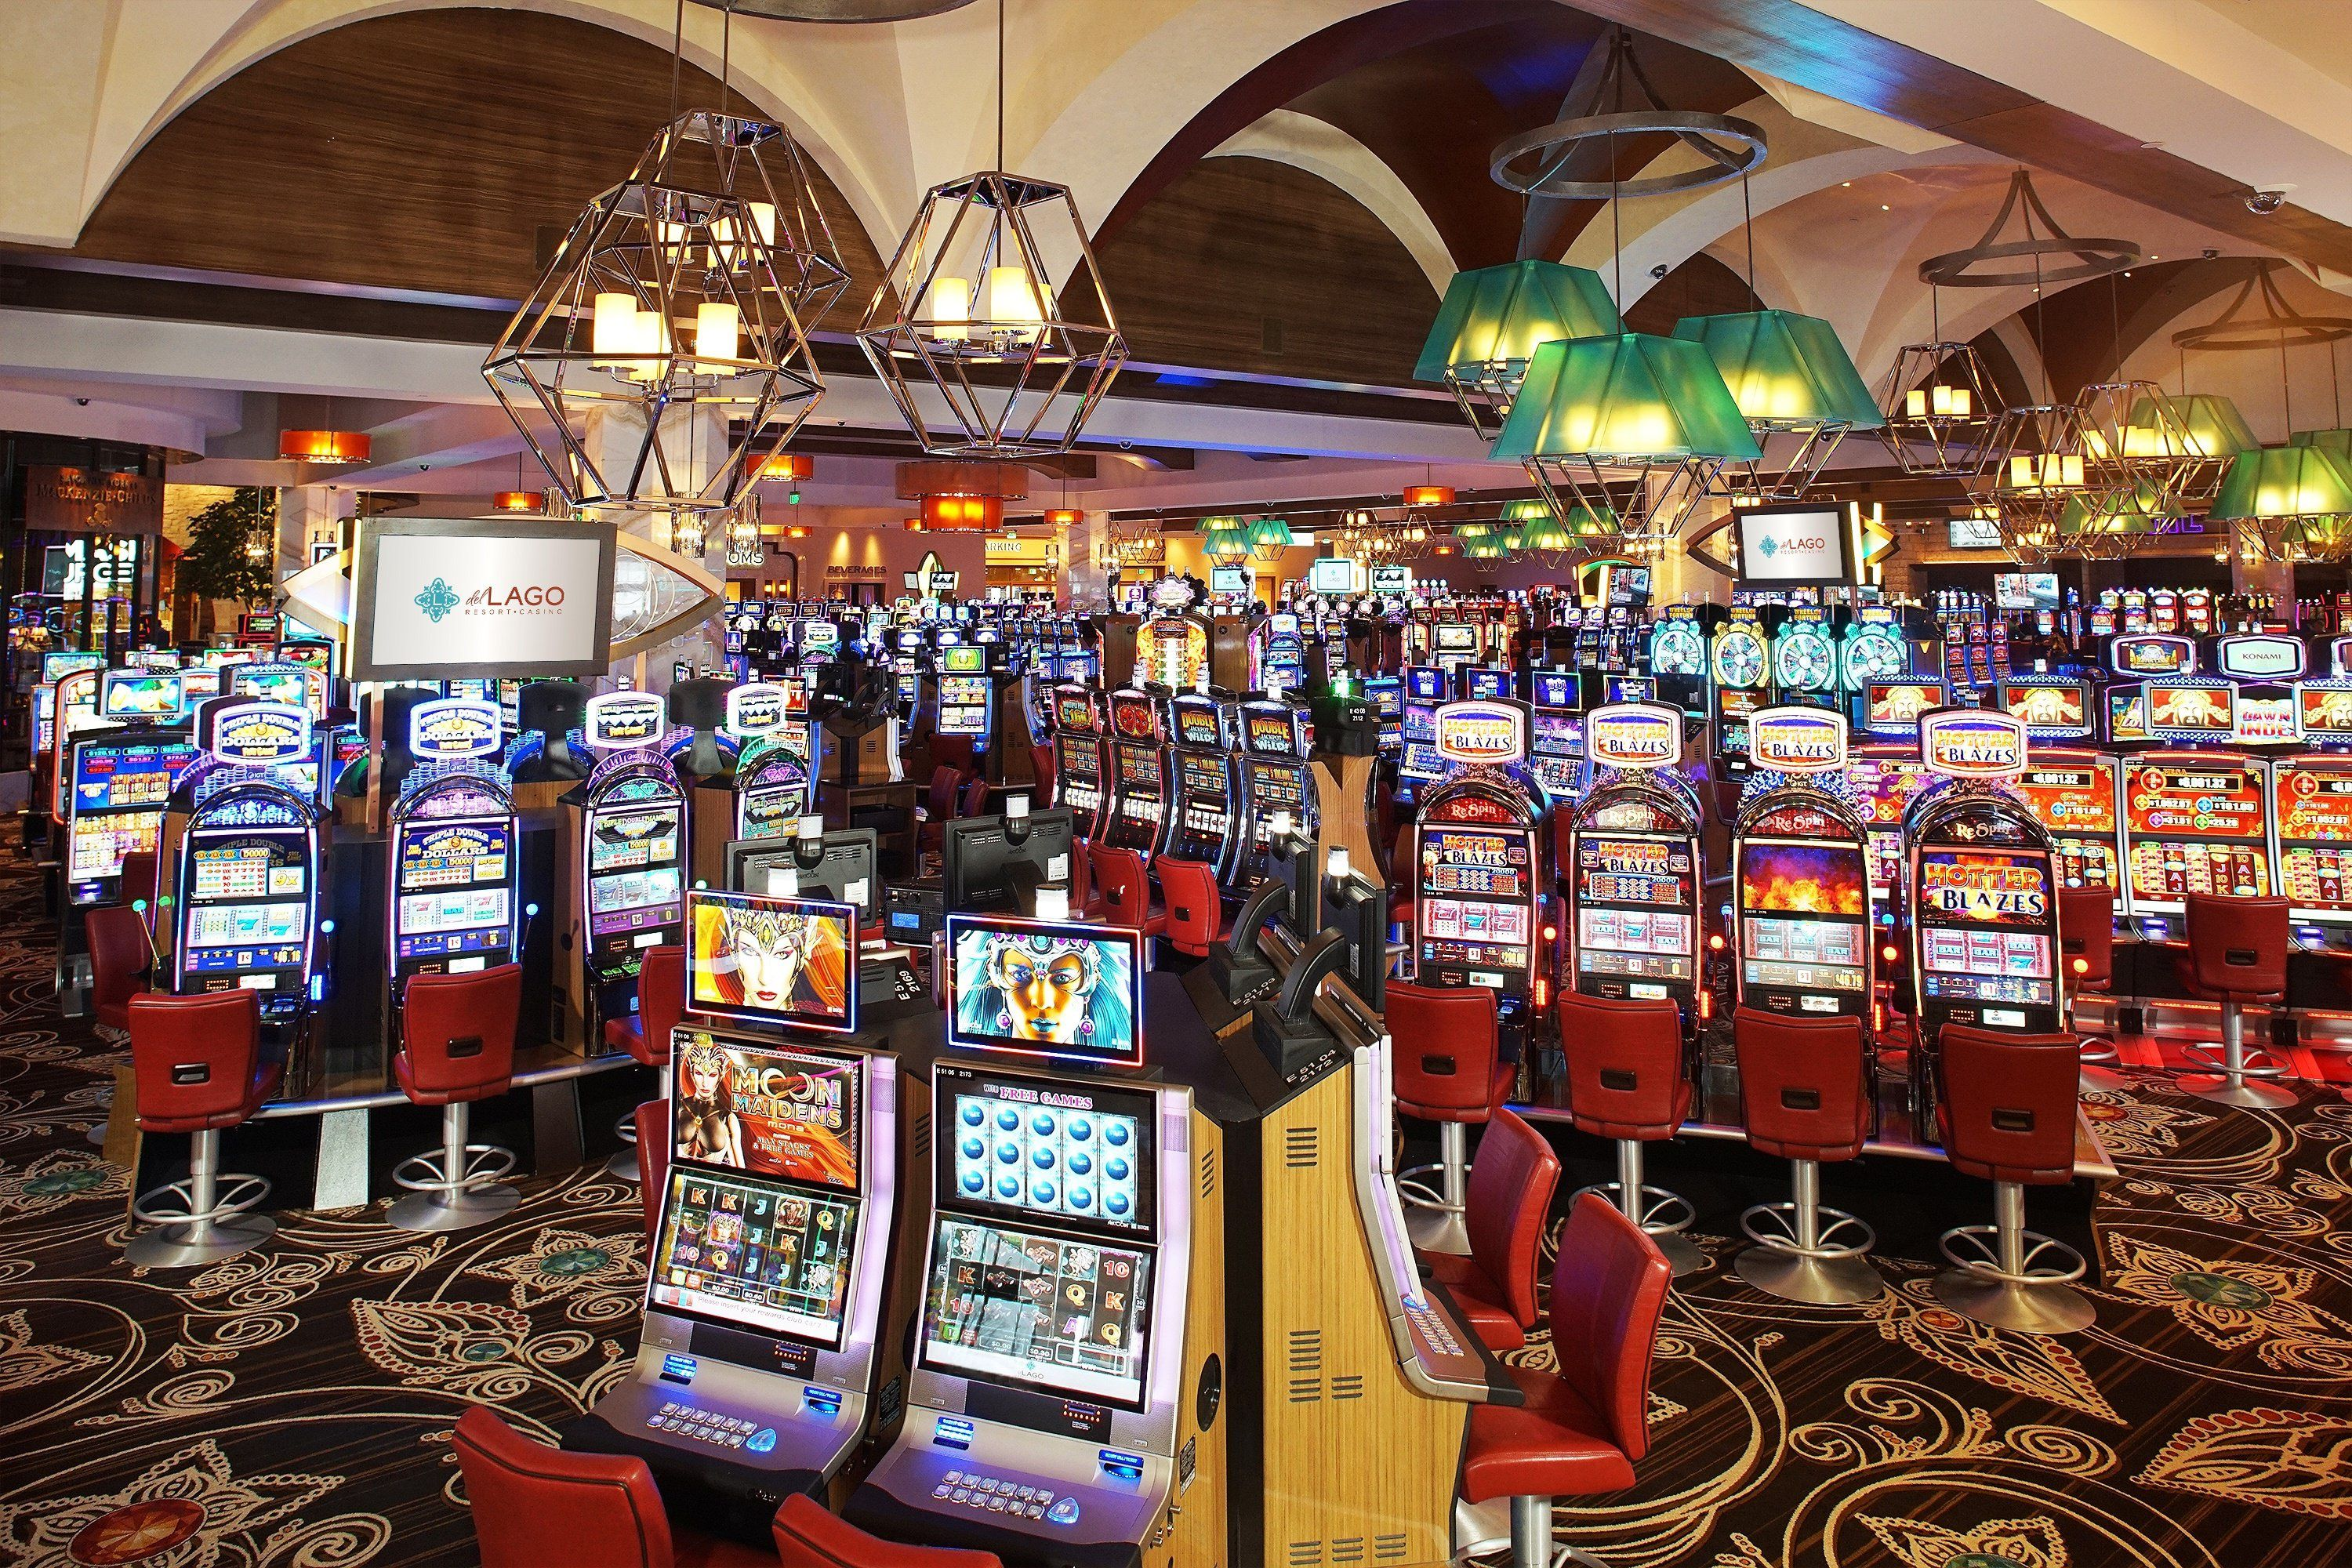 Del Lago Joins Other Upstate Casinos In Cutting Back On Slot